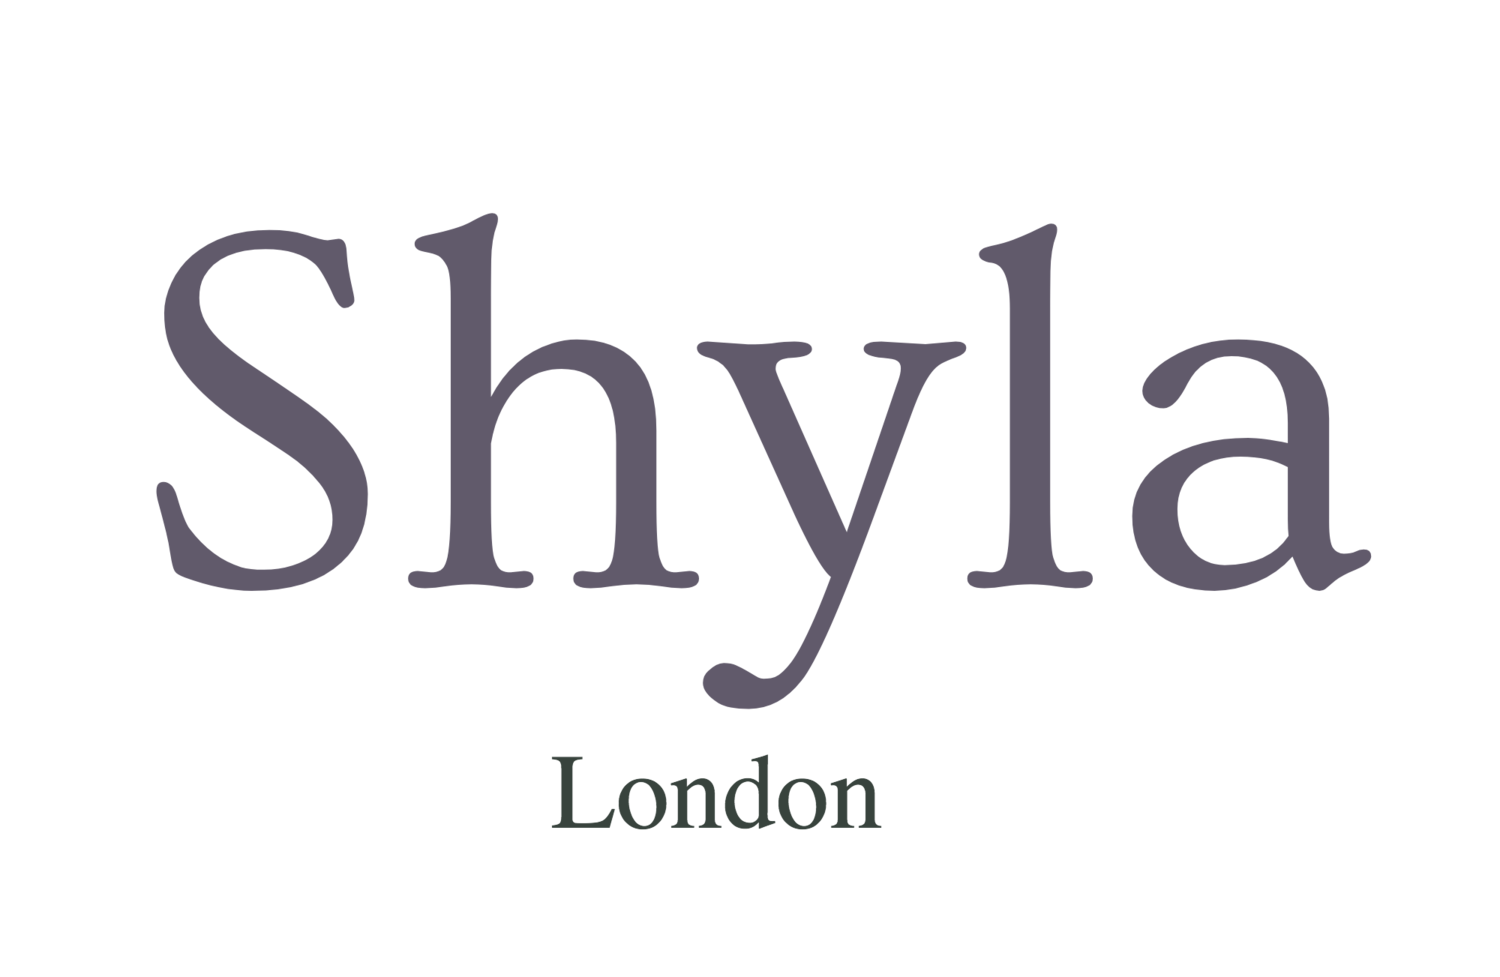 Shyla Jewellery